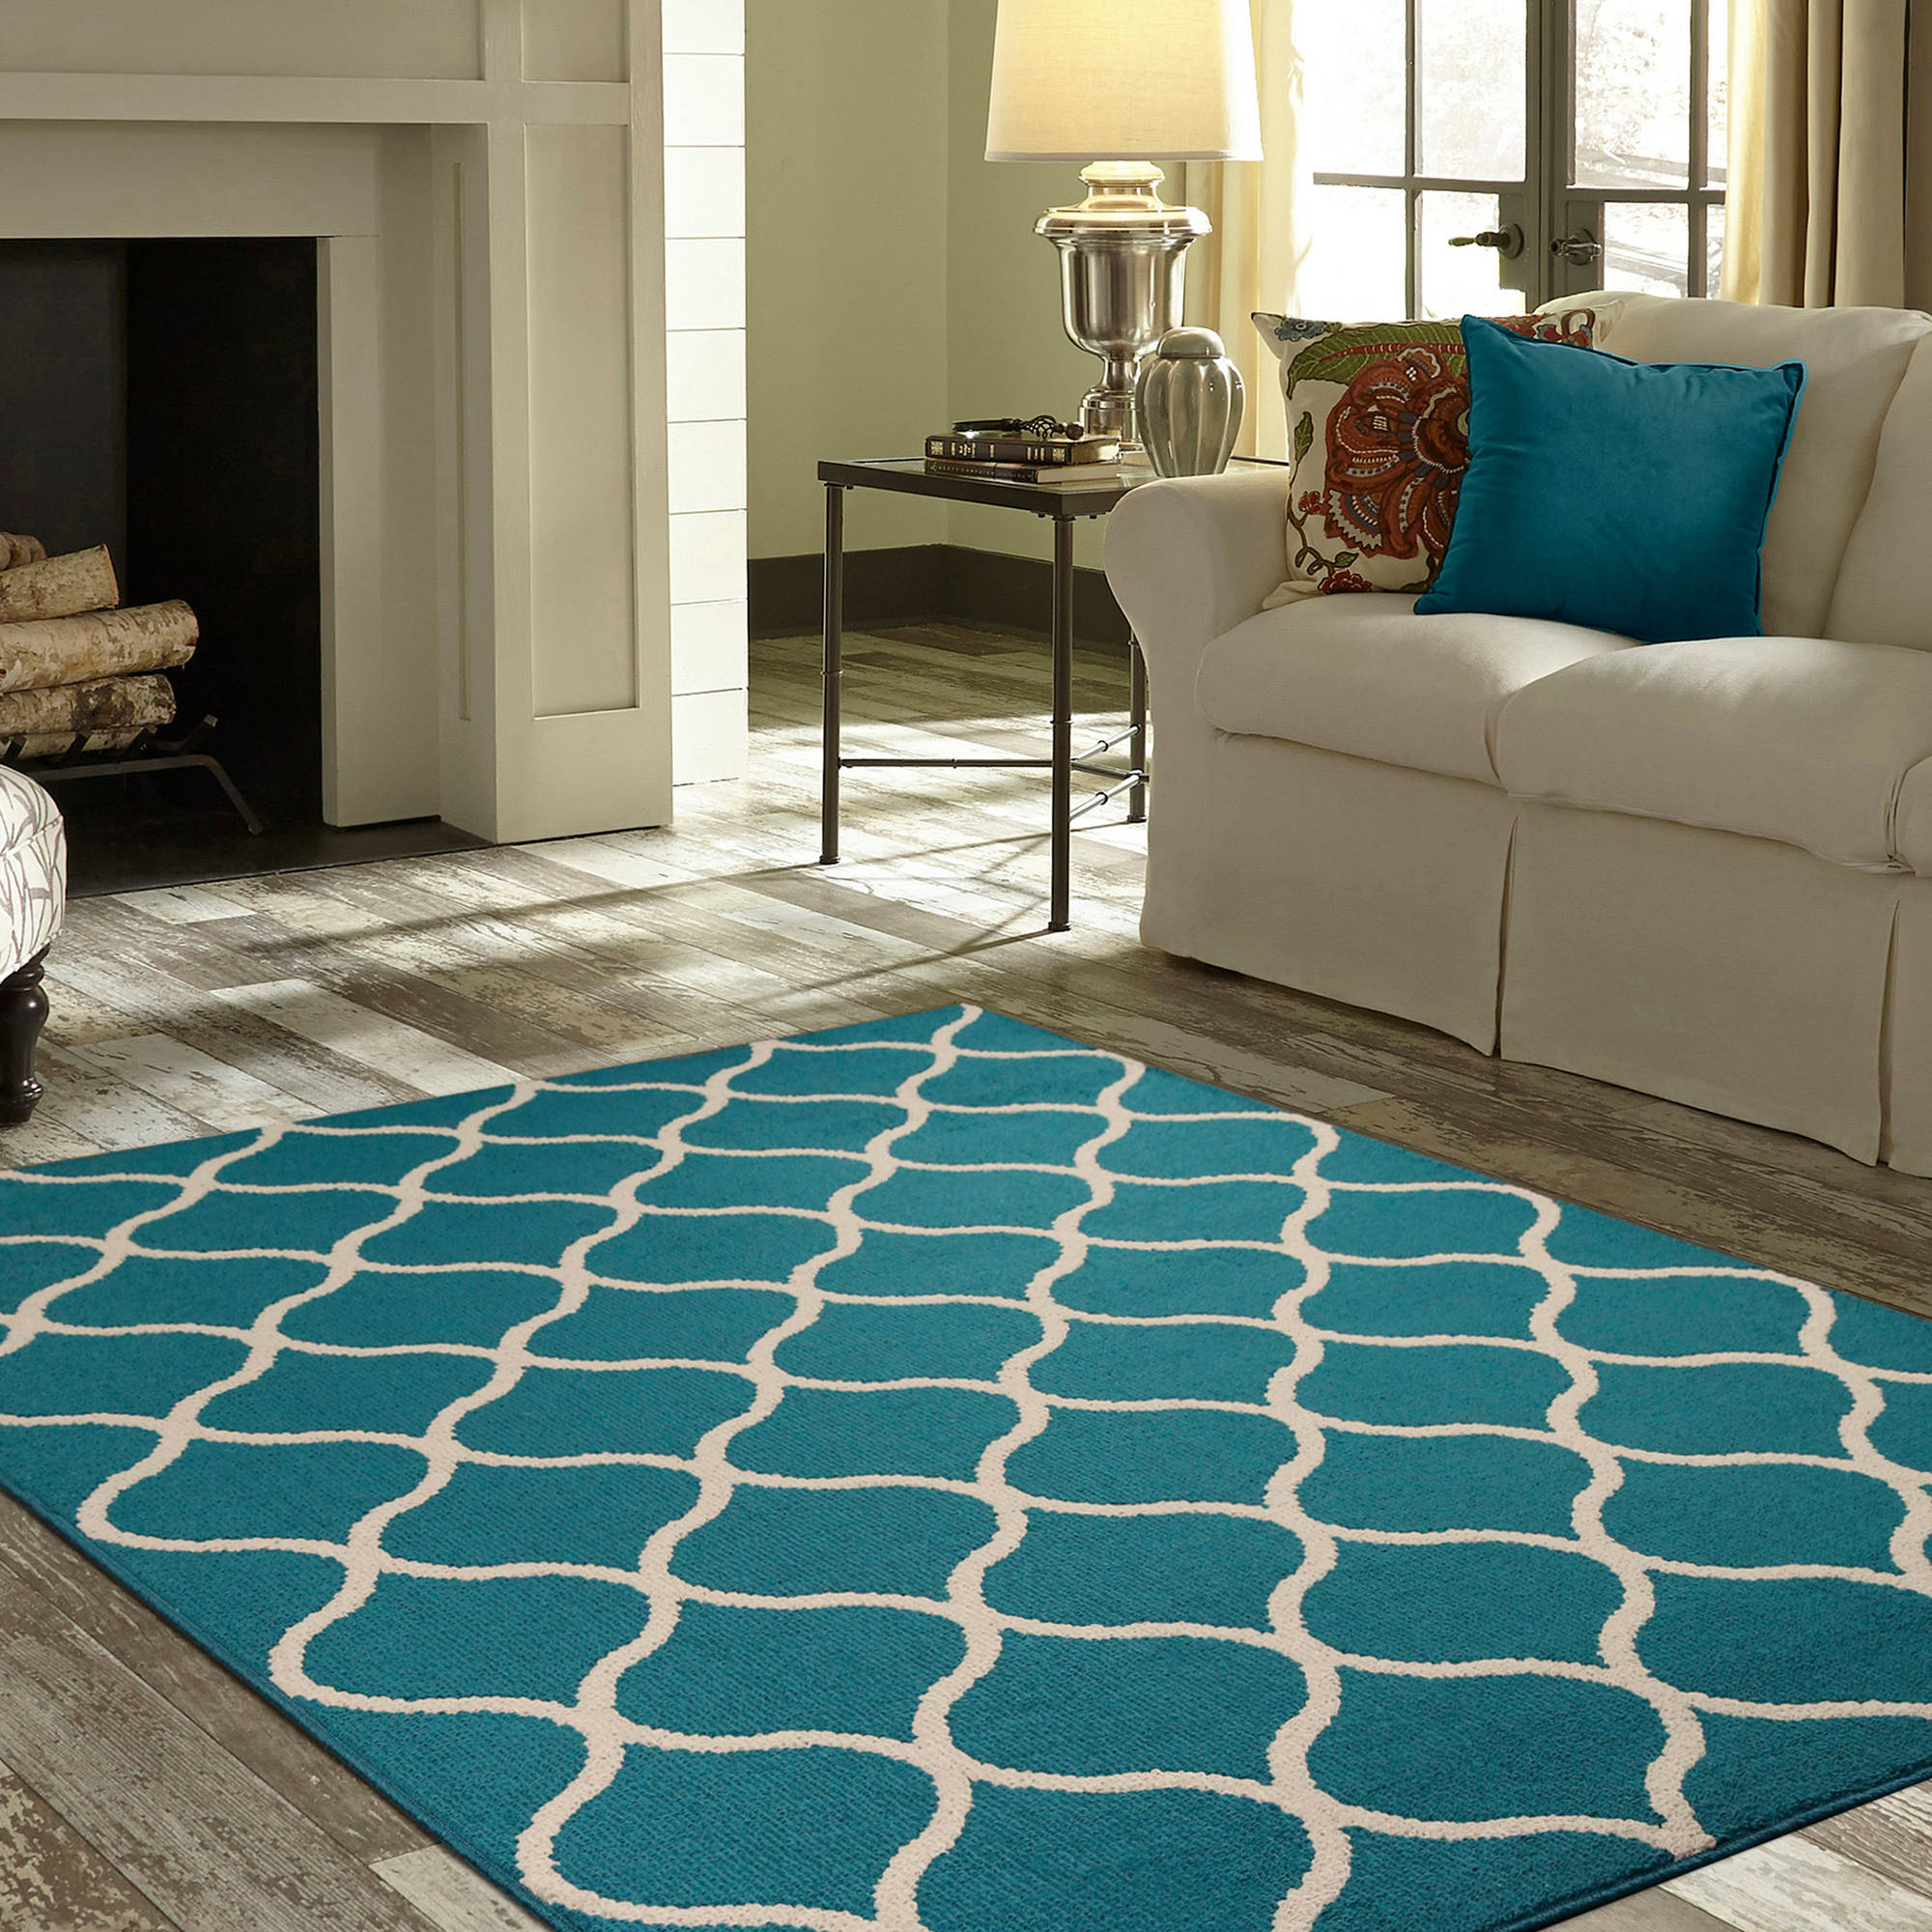 Tips for cleaning teal rug